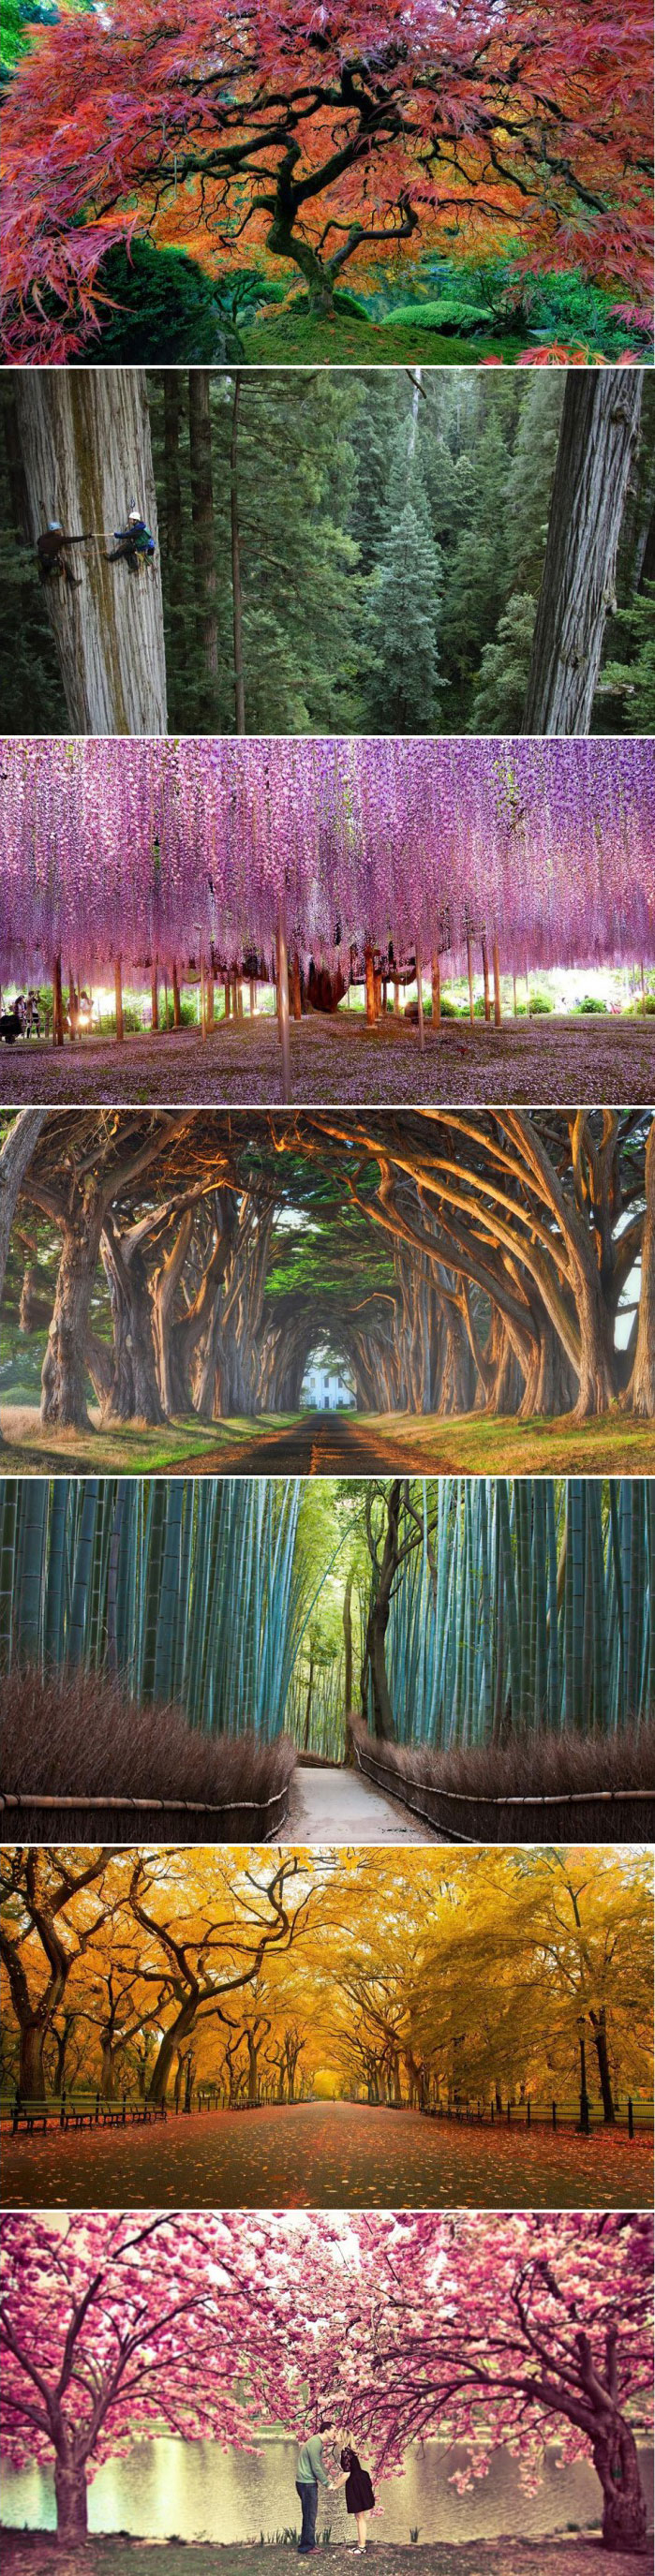 trees, nature, compilation, scenery, beautiful